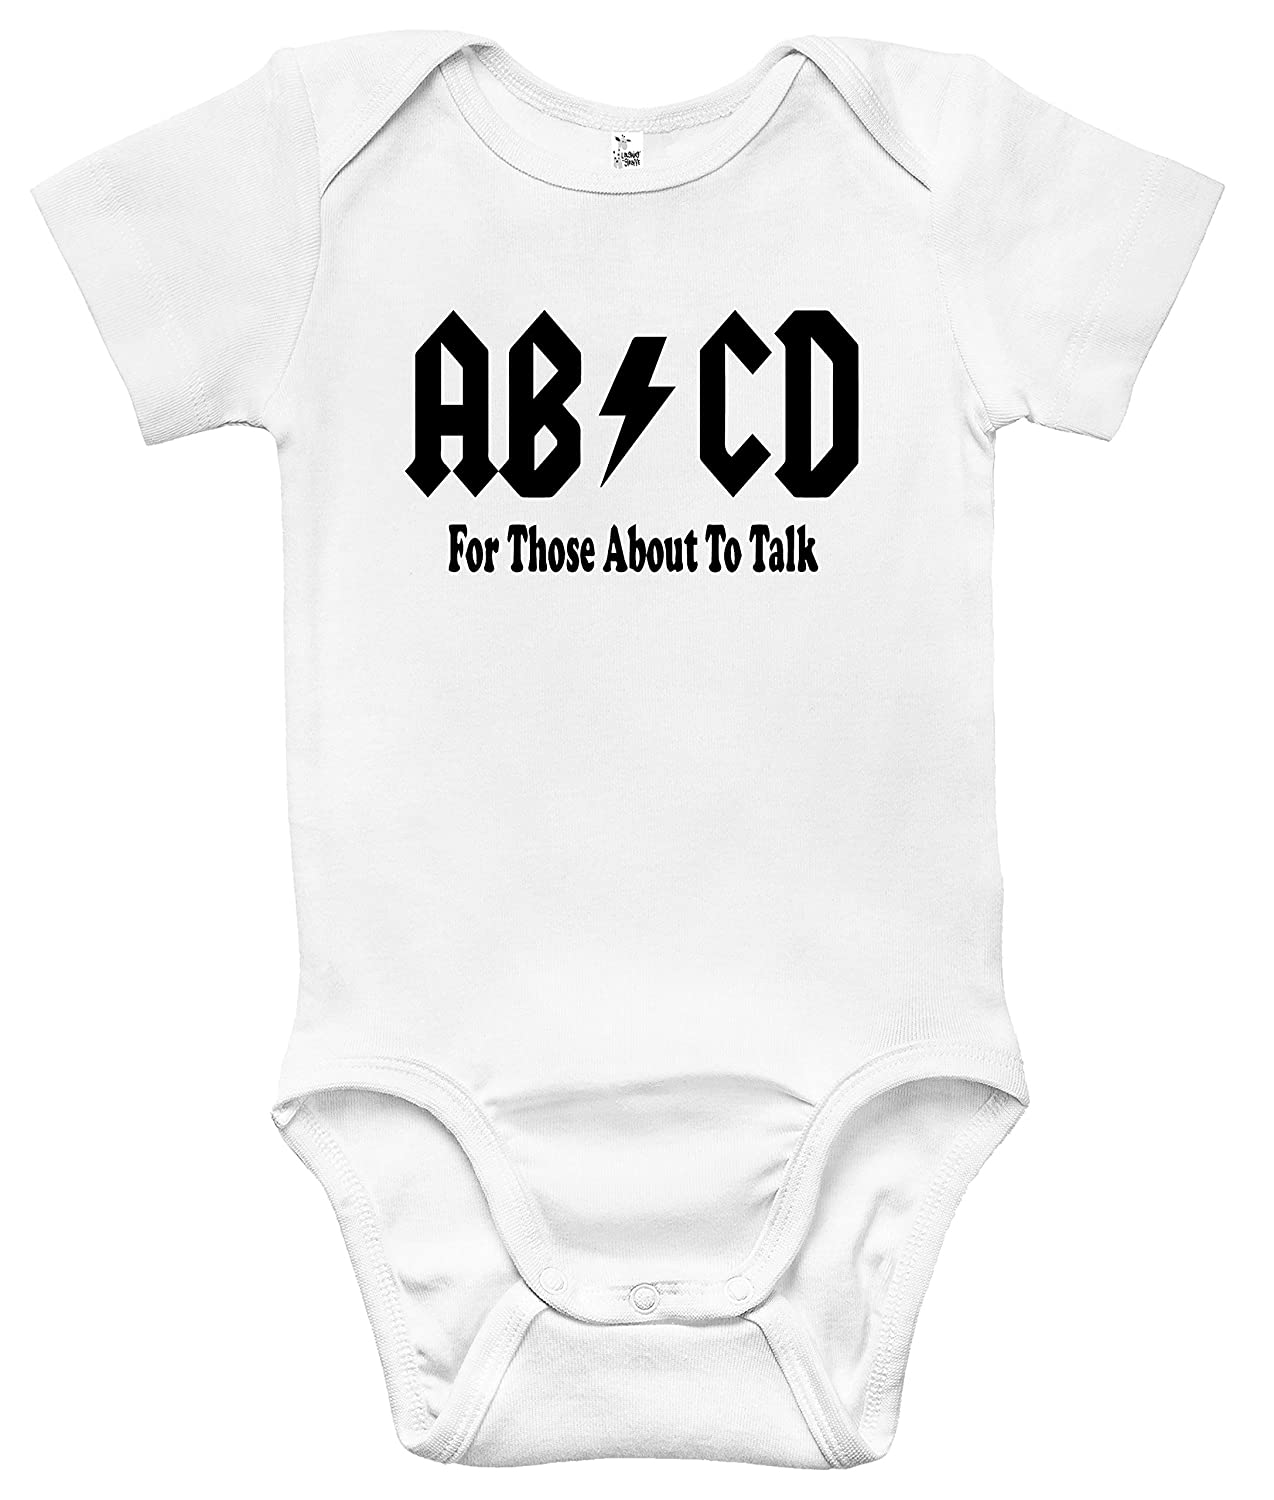 Amazon.com: AB/CD body for Those About To Talk Baby Cute ...